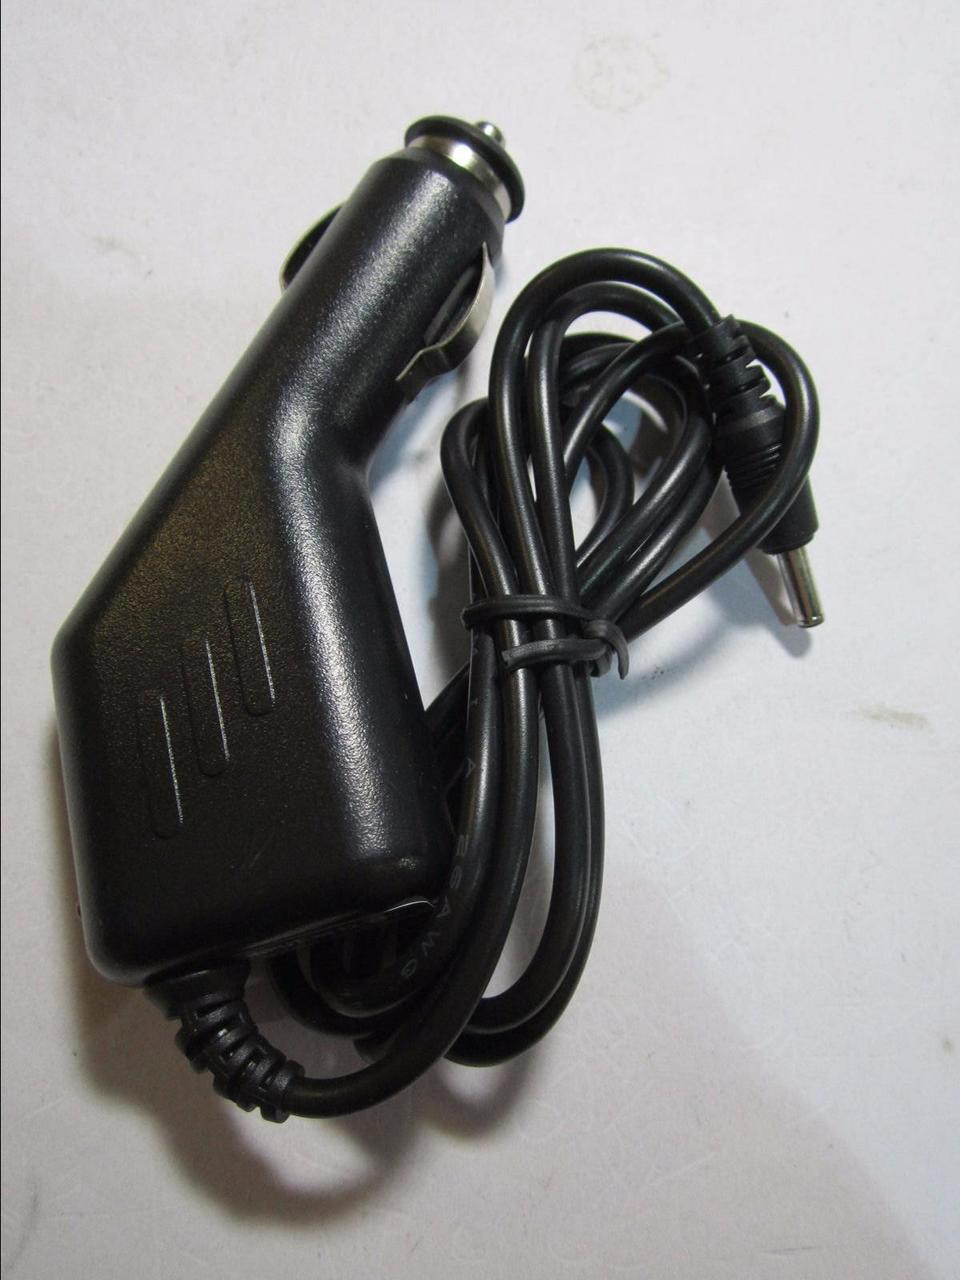 5V 2A USB Cable Lead Charger Power Supply same as KDL0520 5V 2A